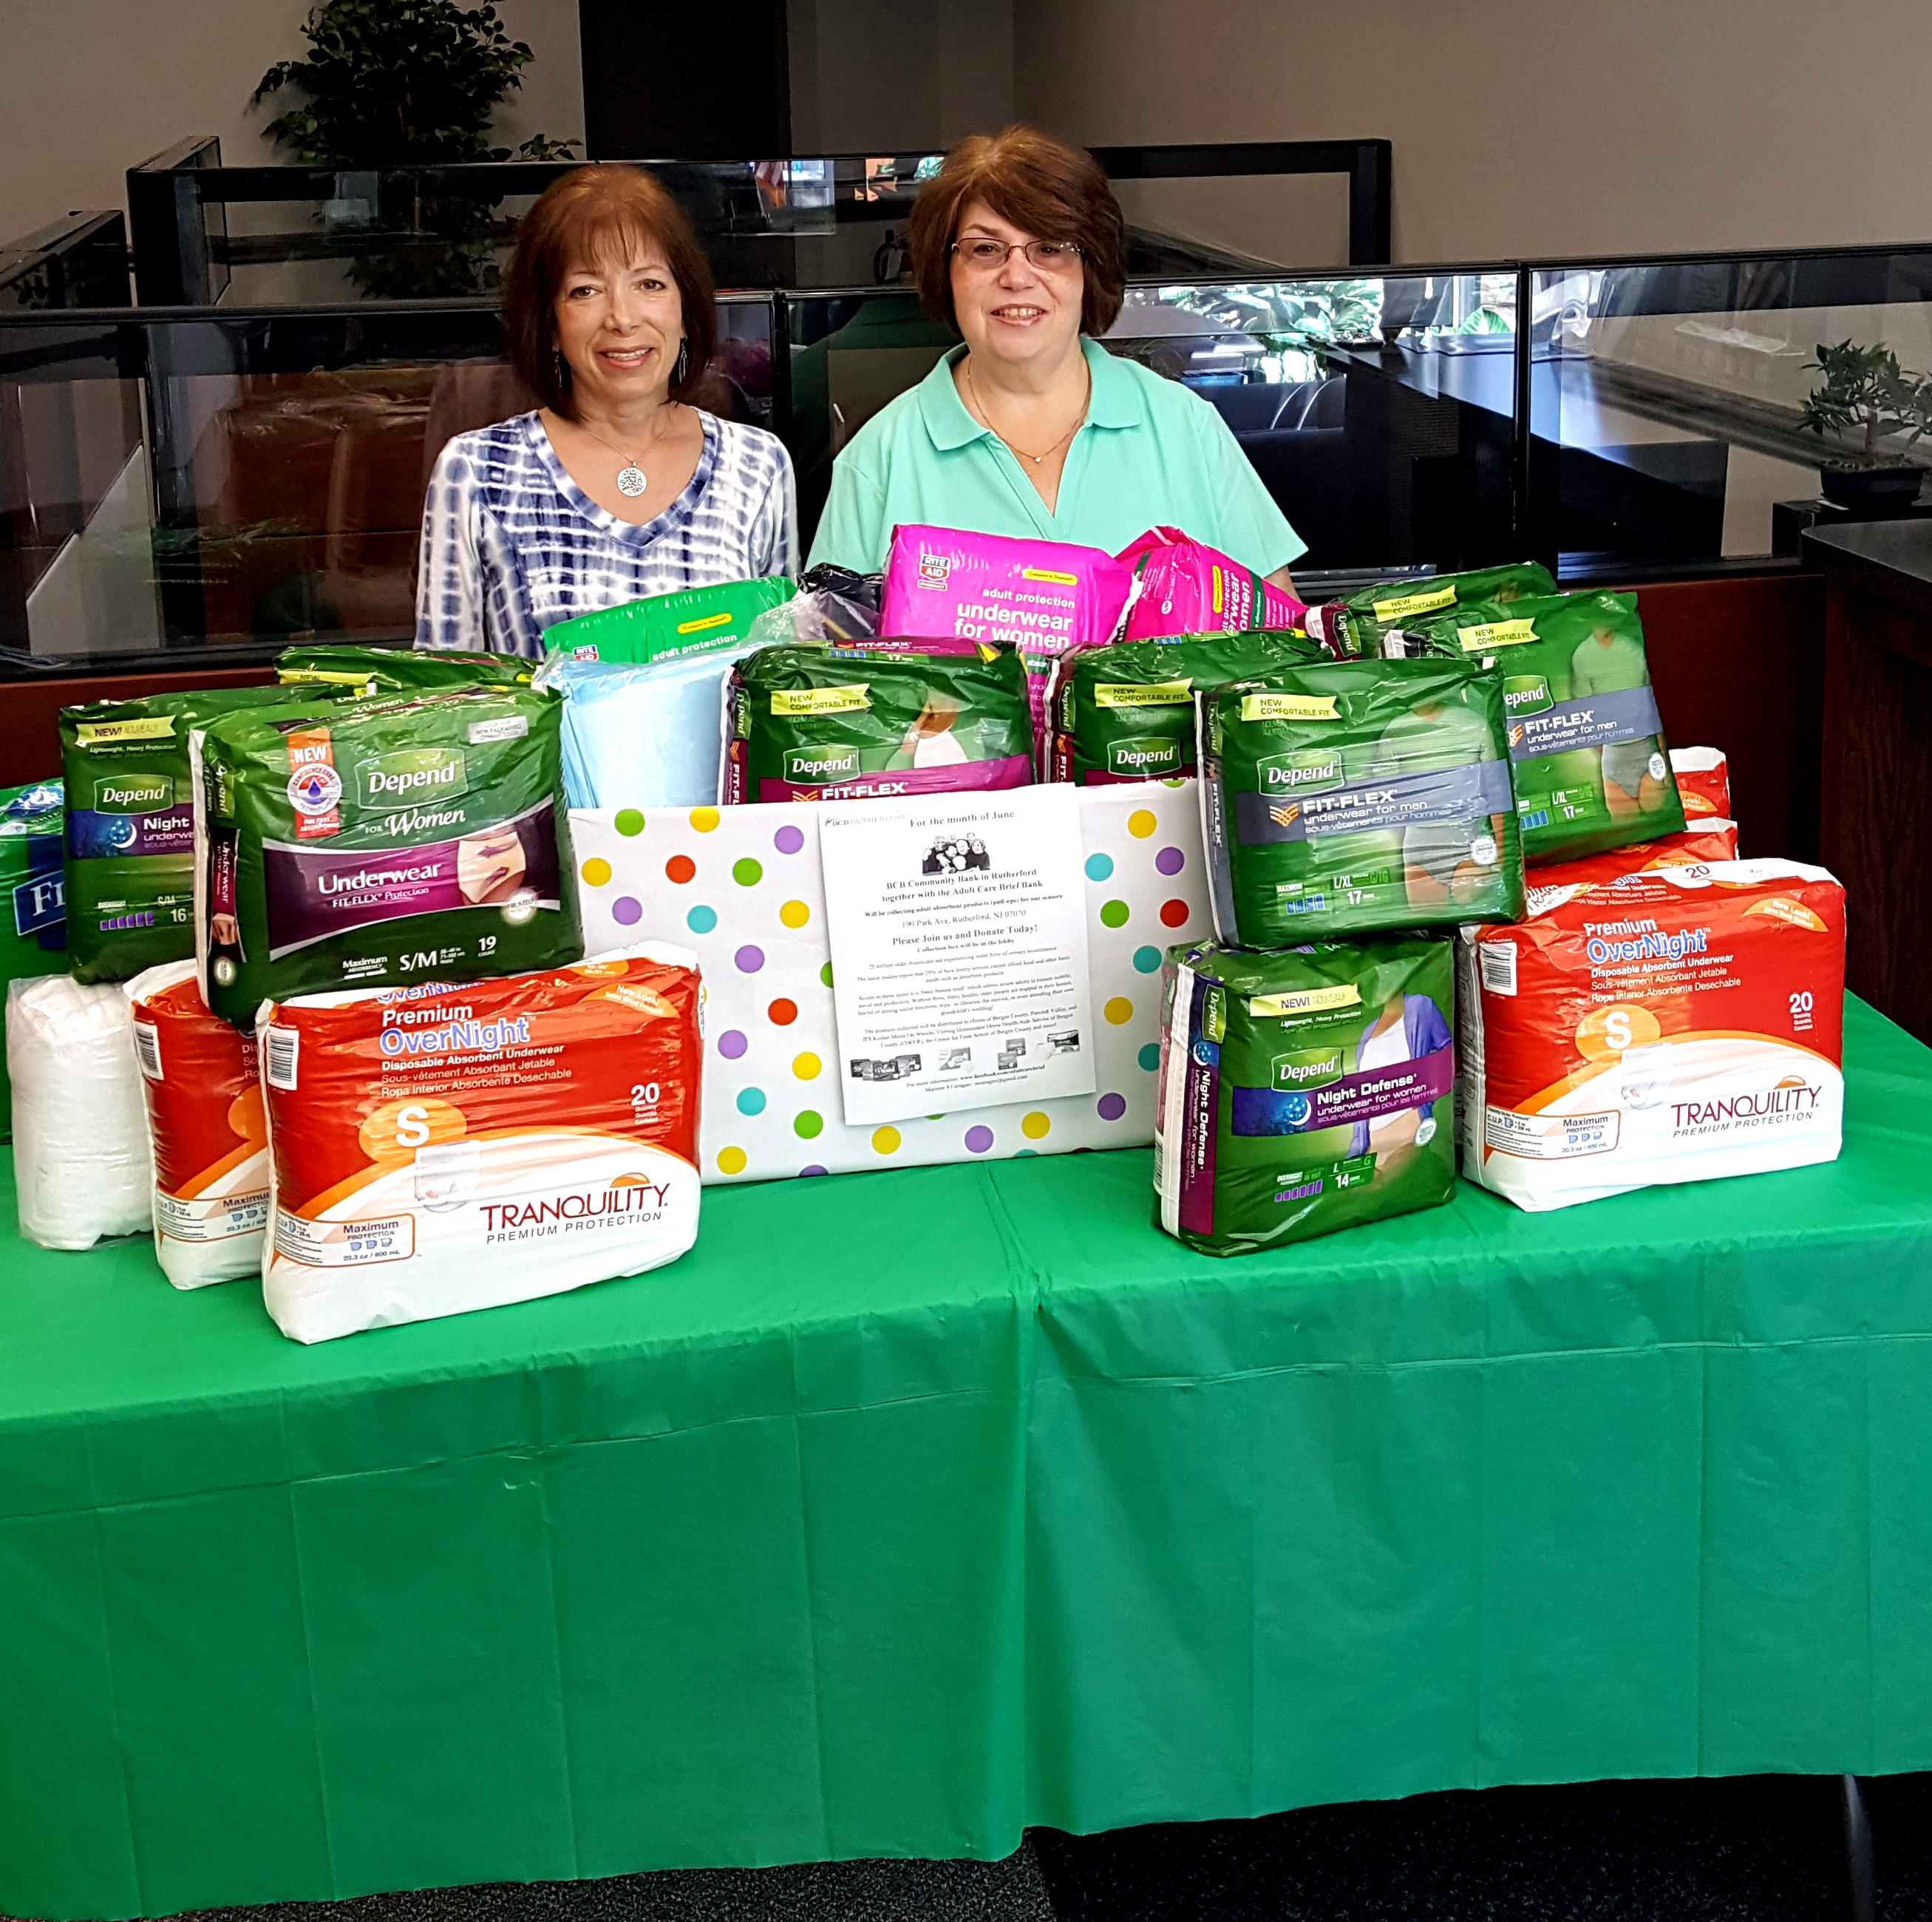 BCB organized an Adult Brief Drive at the Rutherford branch, collecting adult briefs for low income residents of Bergen County. Pictured are Marlene Ceragno, Founder of the Adult Brief Bank, and Kathleen Hansen, Branch Manager at BCB.